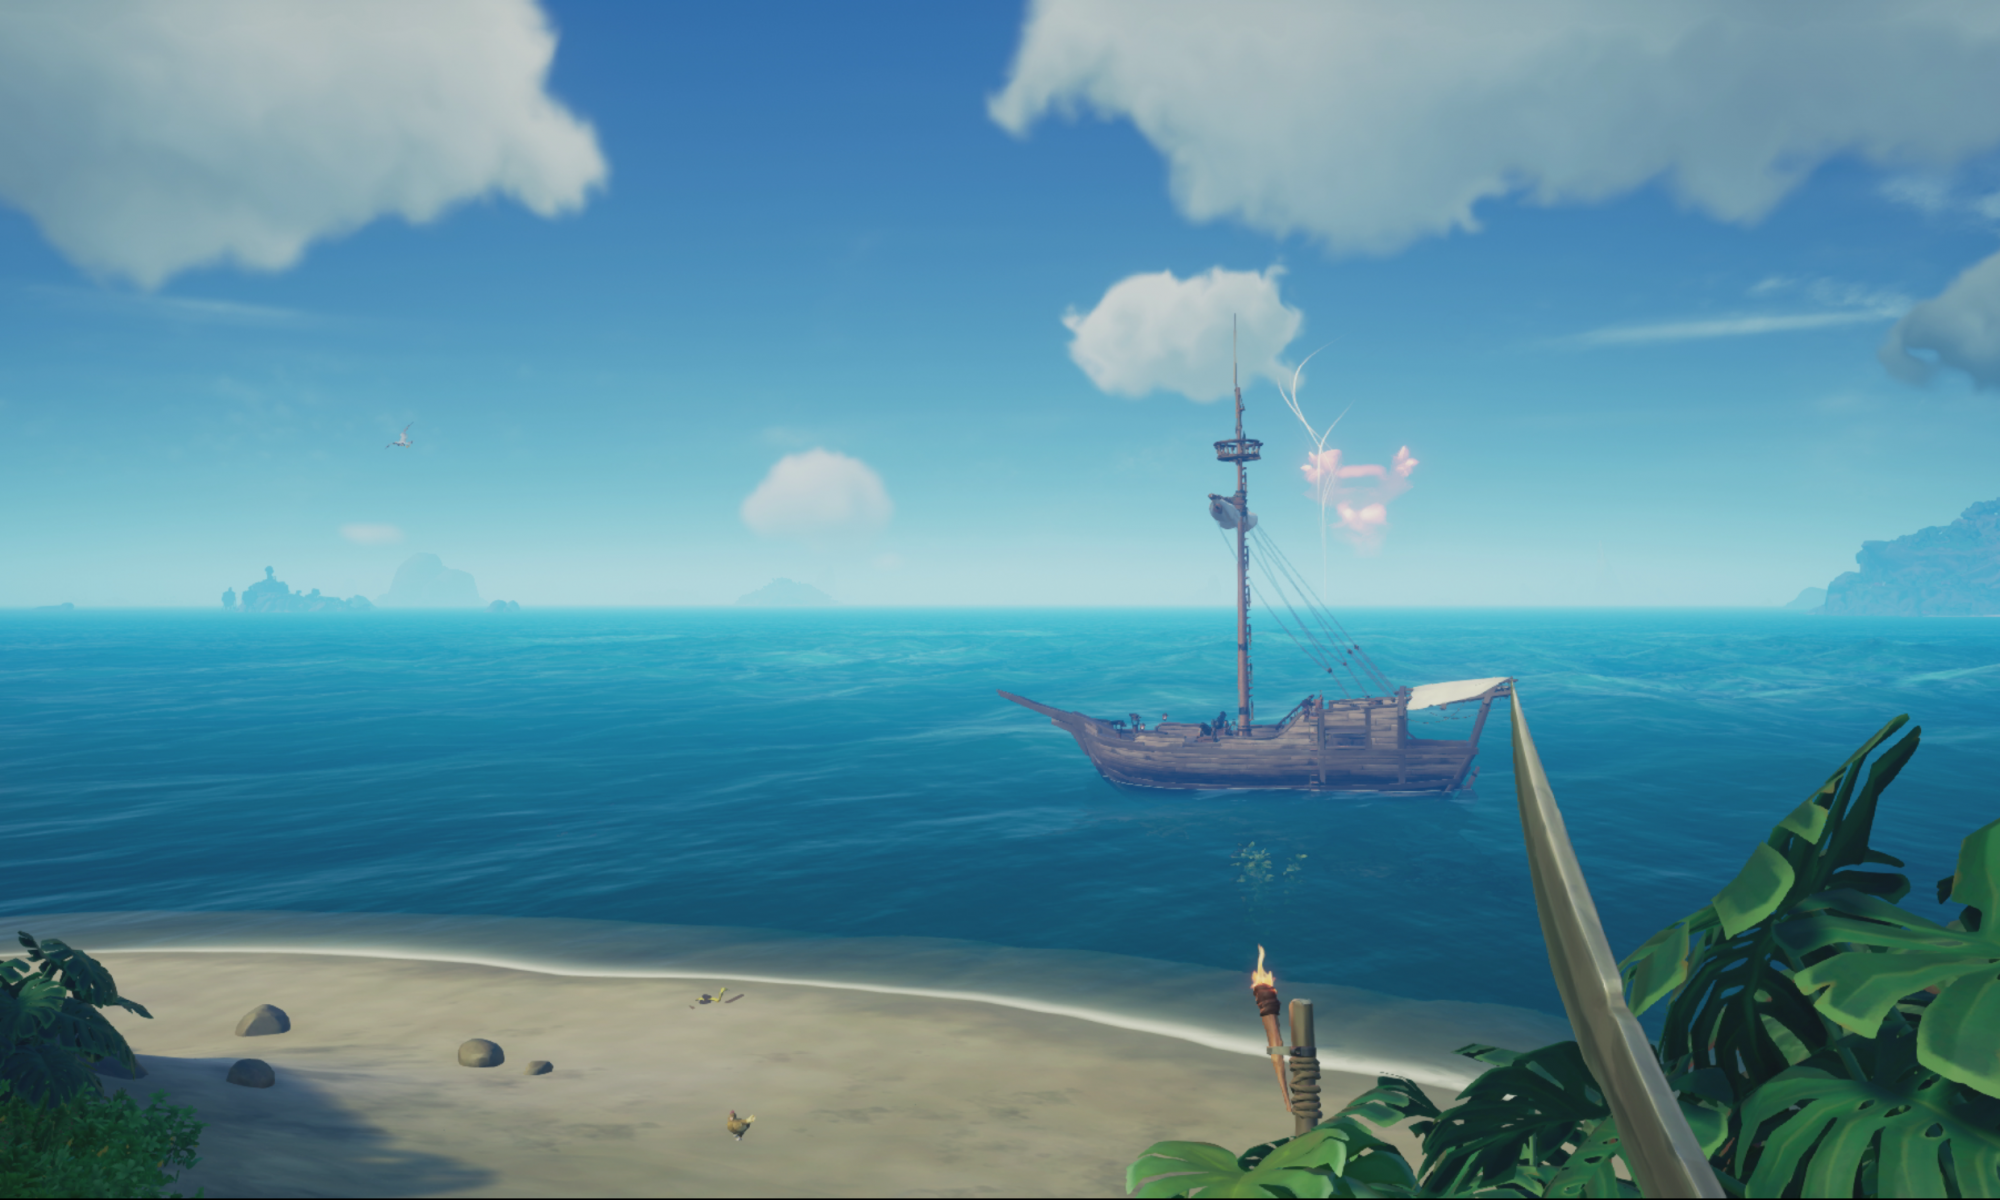 Screenshot showing a sloop ship at sea beyond a beach.